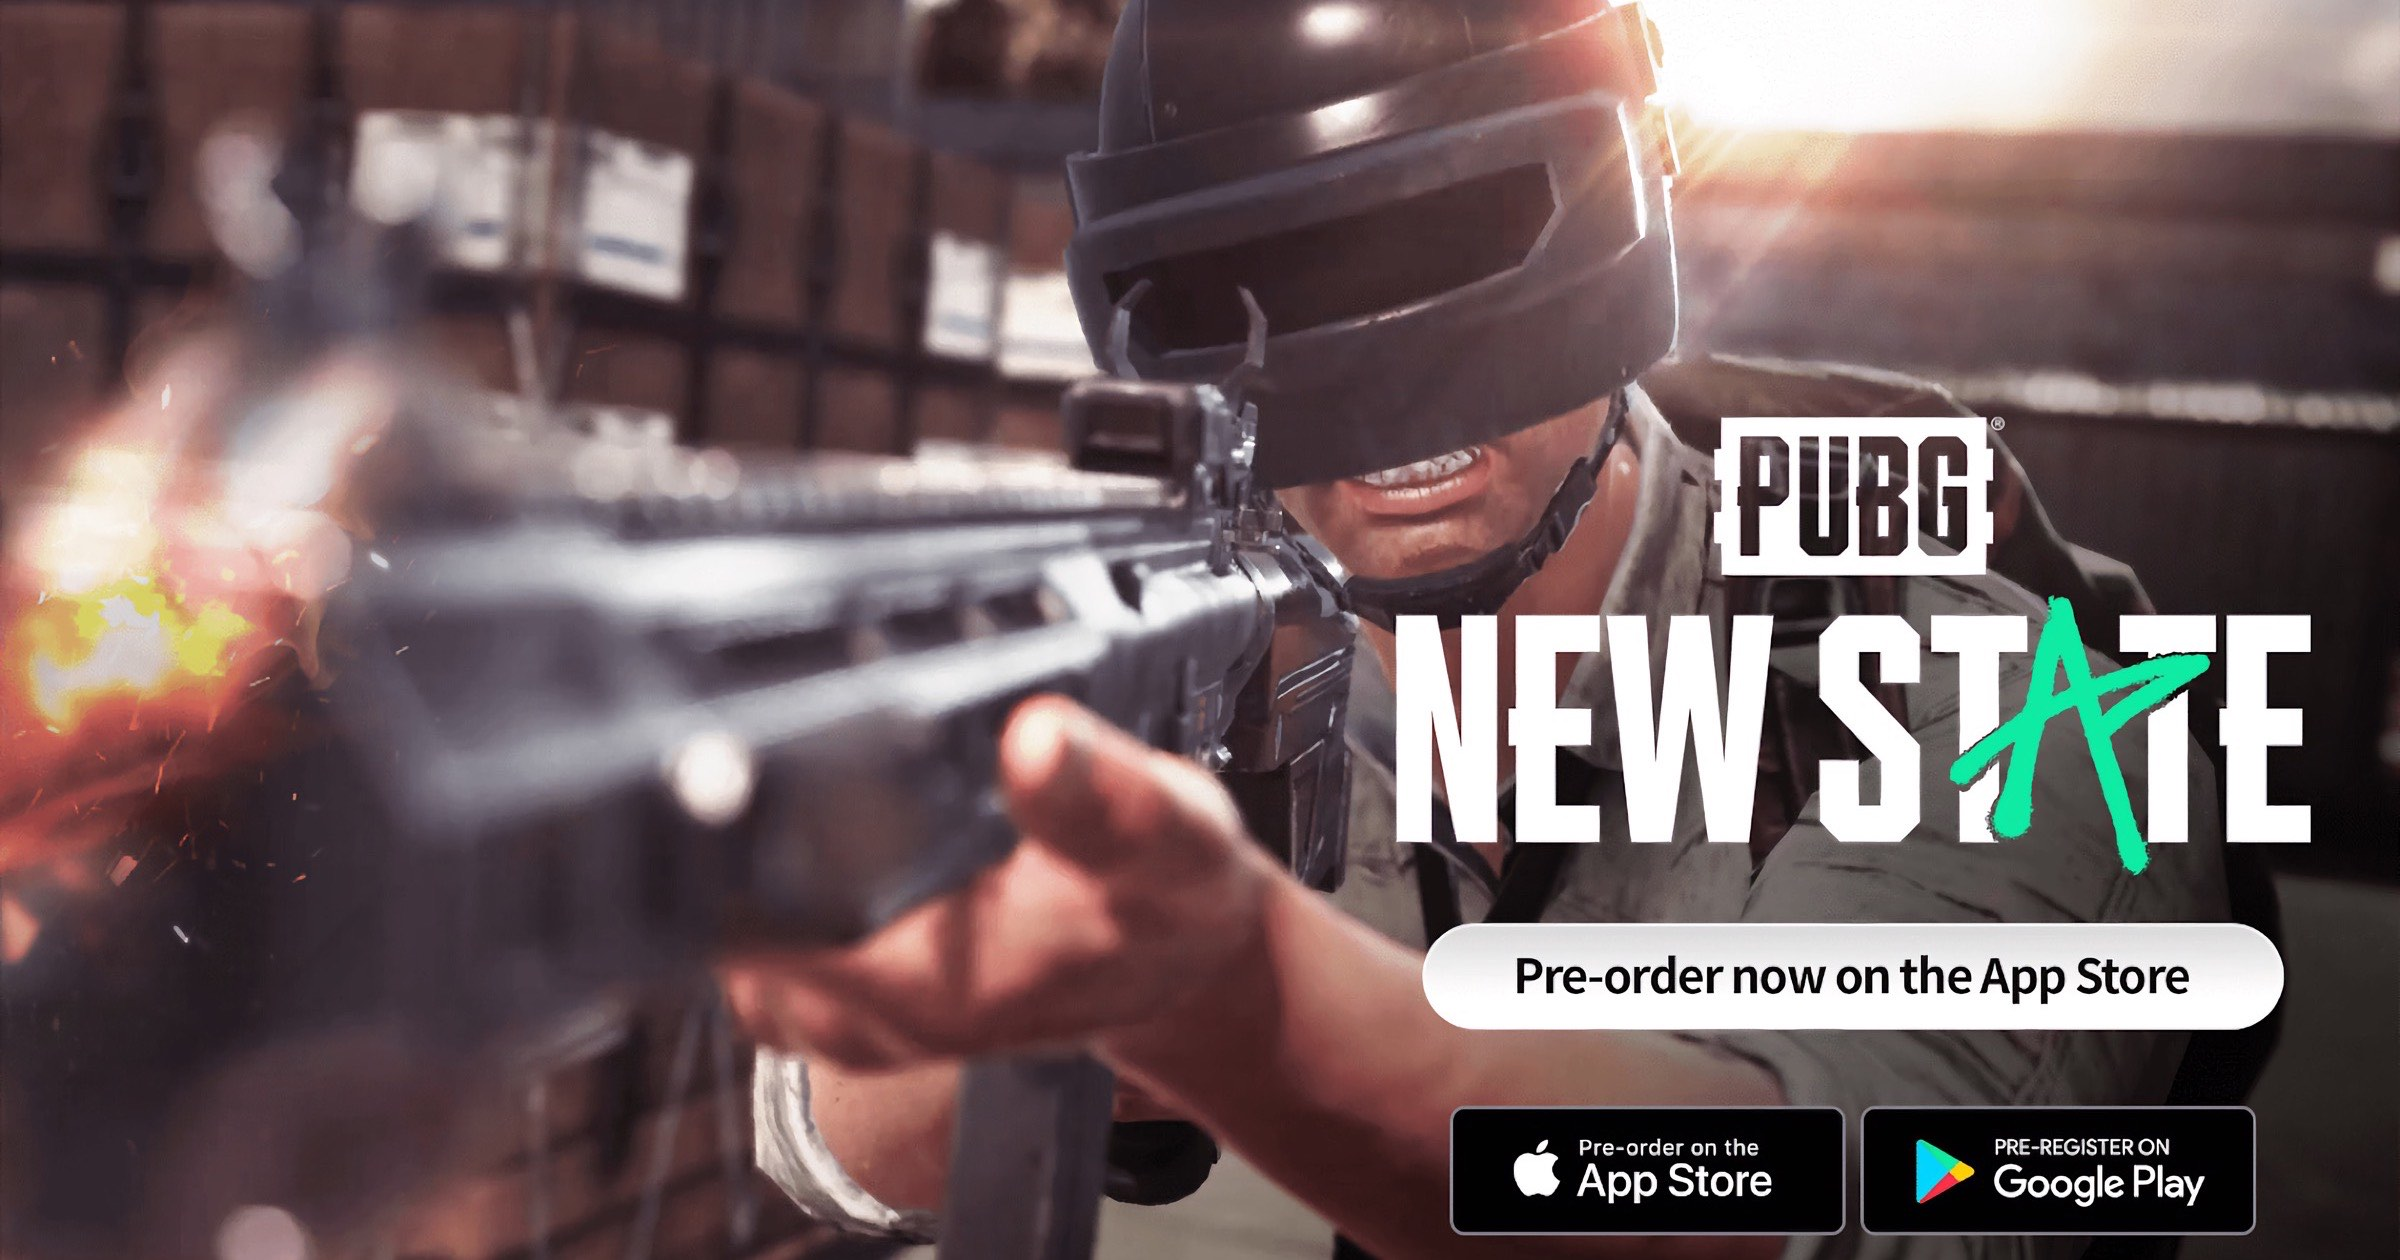 App Store Preorders Open for 'PUBG: NEW STATE' Game